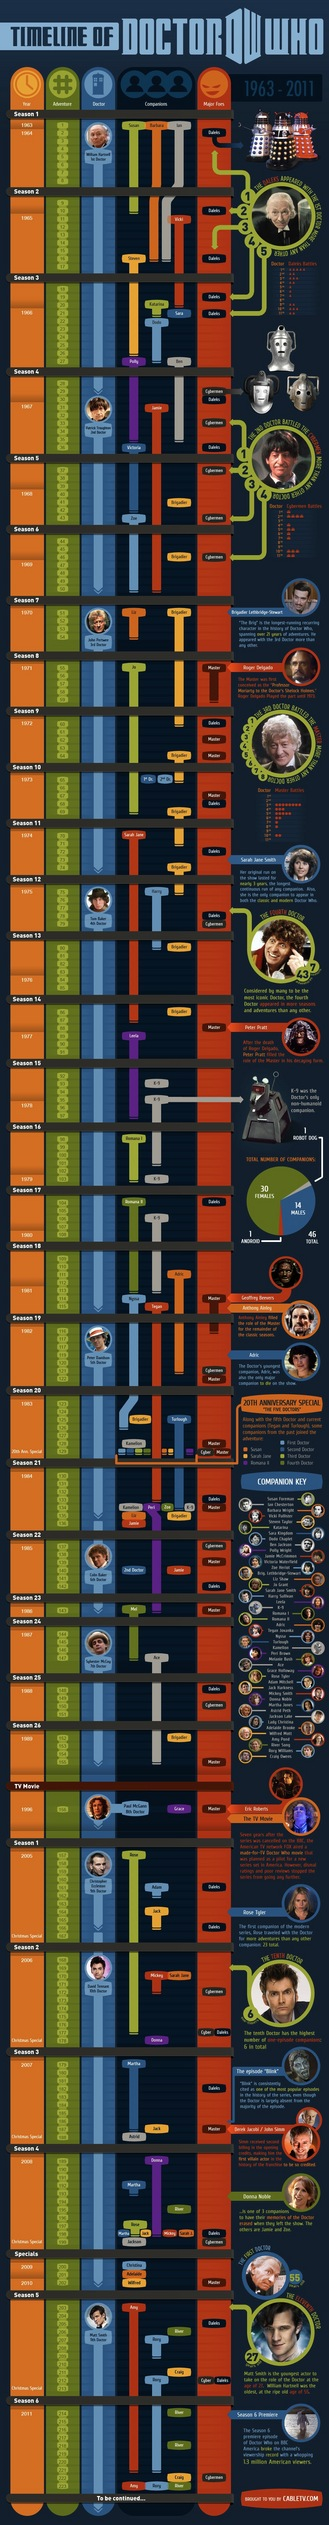 DoctorWho1963to2011Infographic.jpg